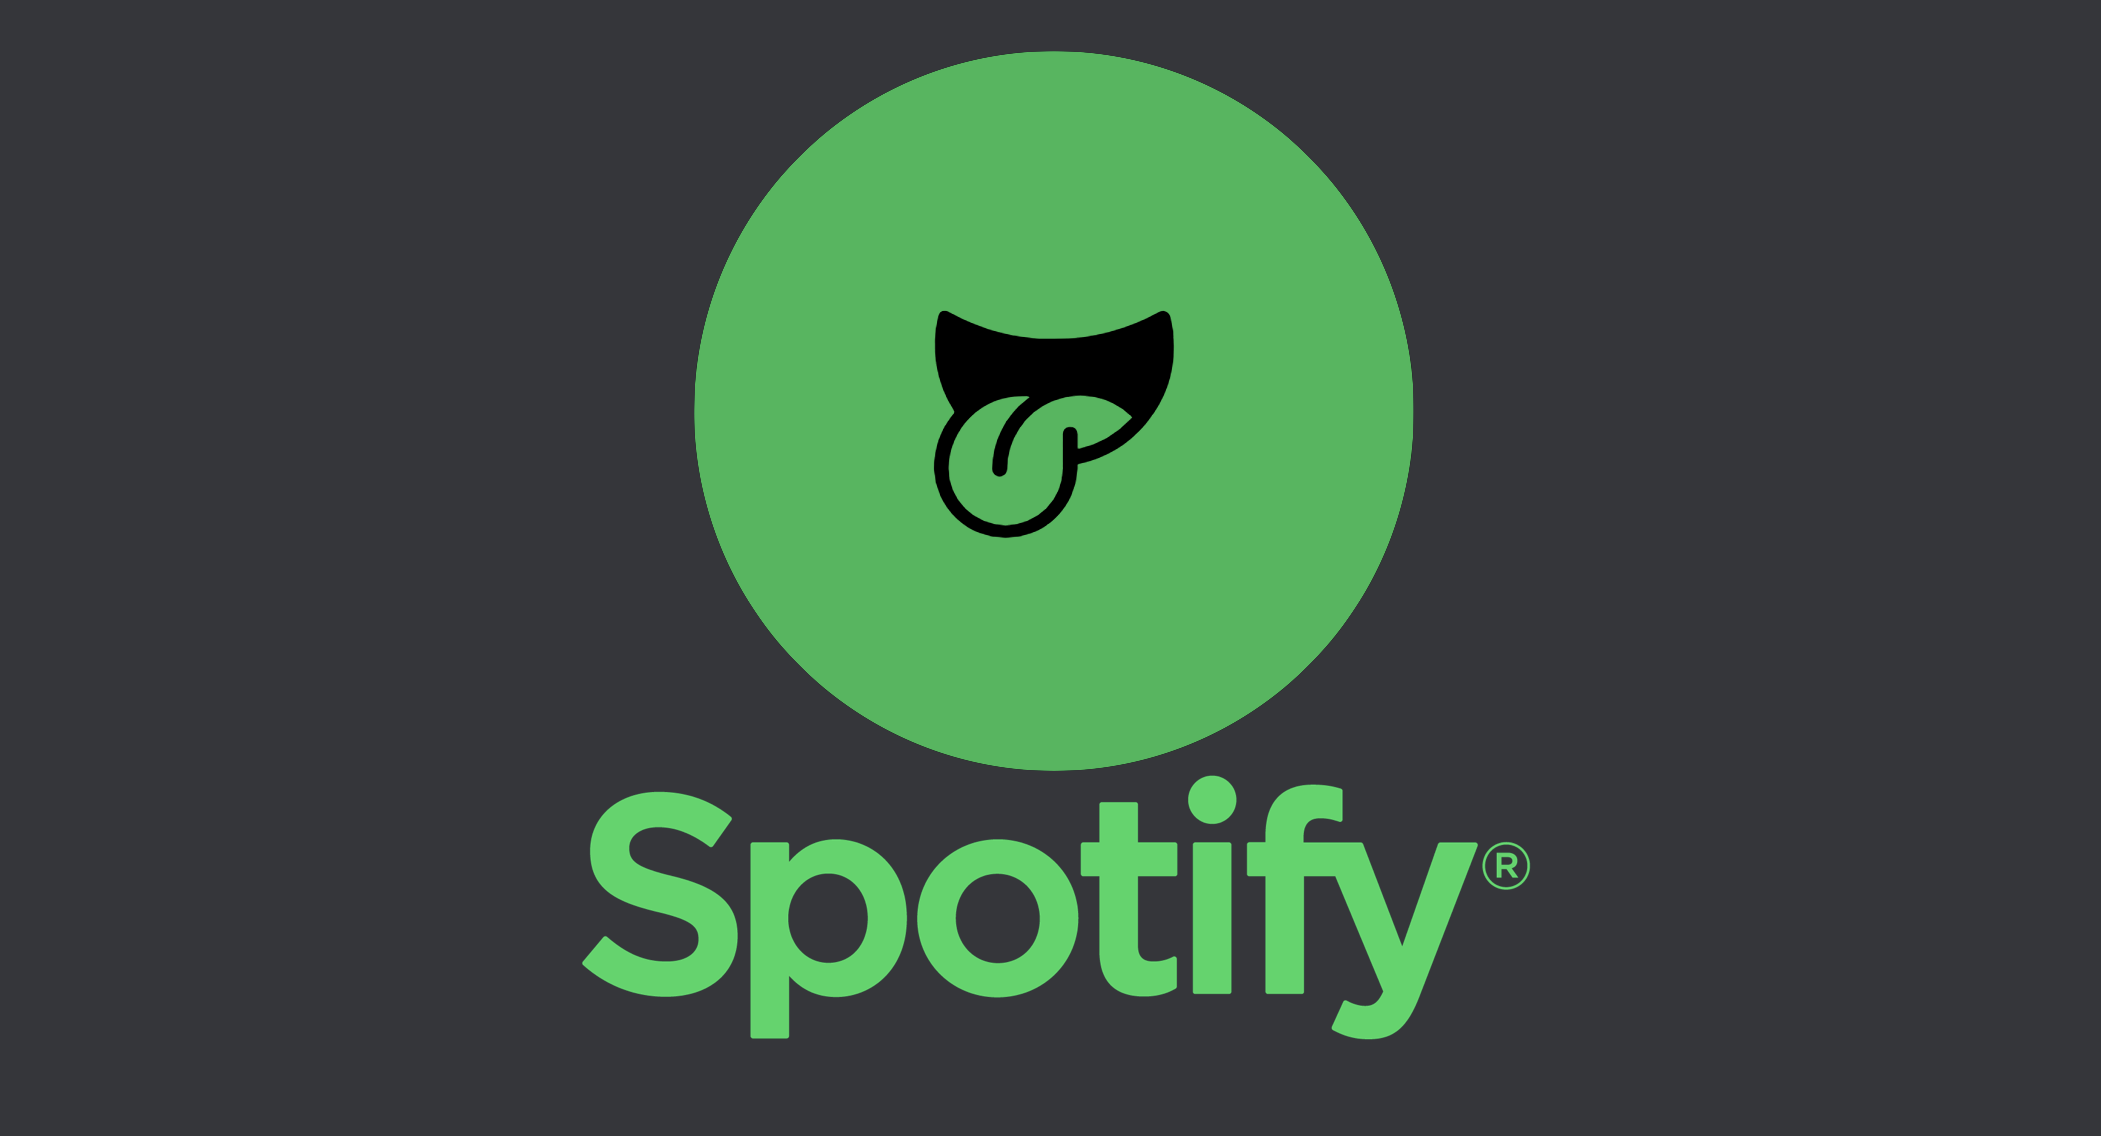 How to Change Spotify Username?